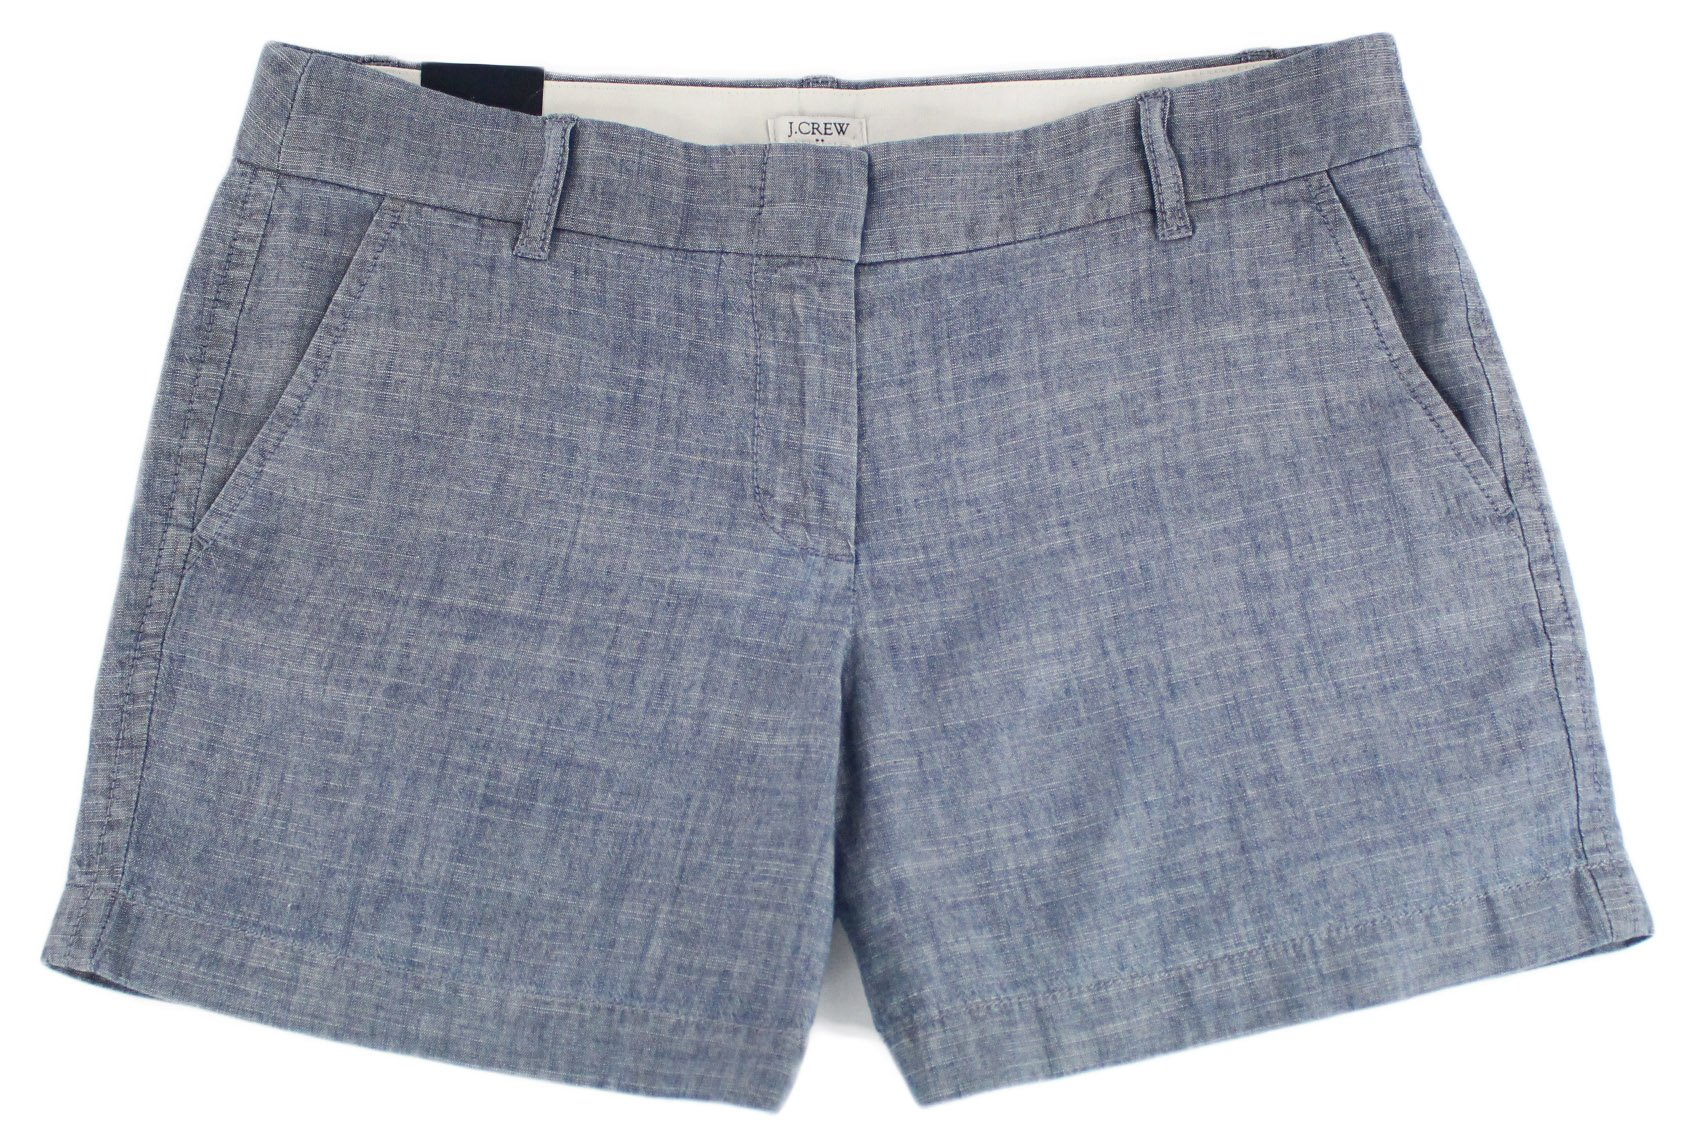 J. Crew - Women's - 5'' Chino Shorts (Multiple Color/Size Options) (6, Chambray)